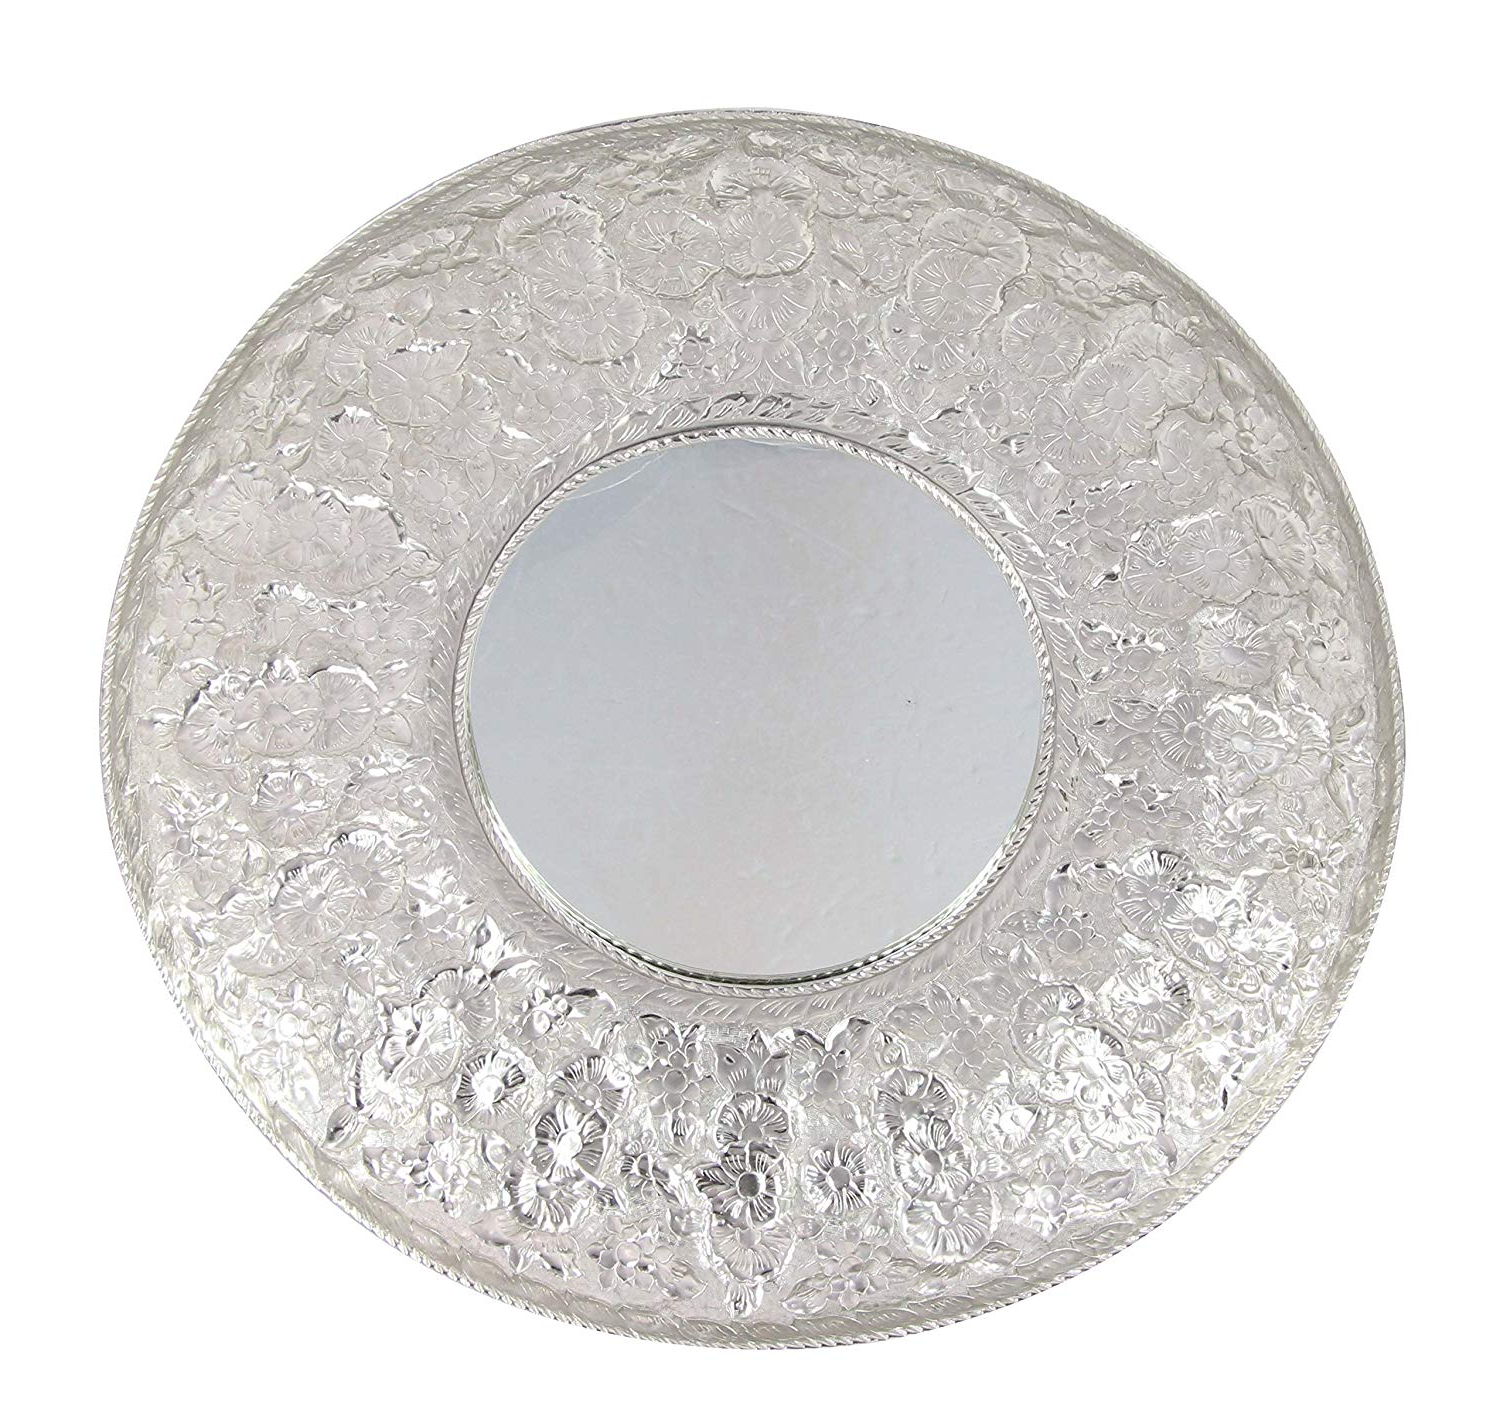 Amazon: Deco 79 53941 Aluminum Concave Wall Mirror Silver: Home Throughout Widely Used Concave Wall Mirrors (View 15 of 20)